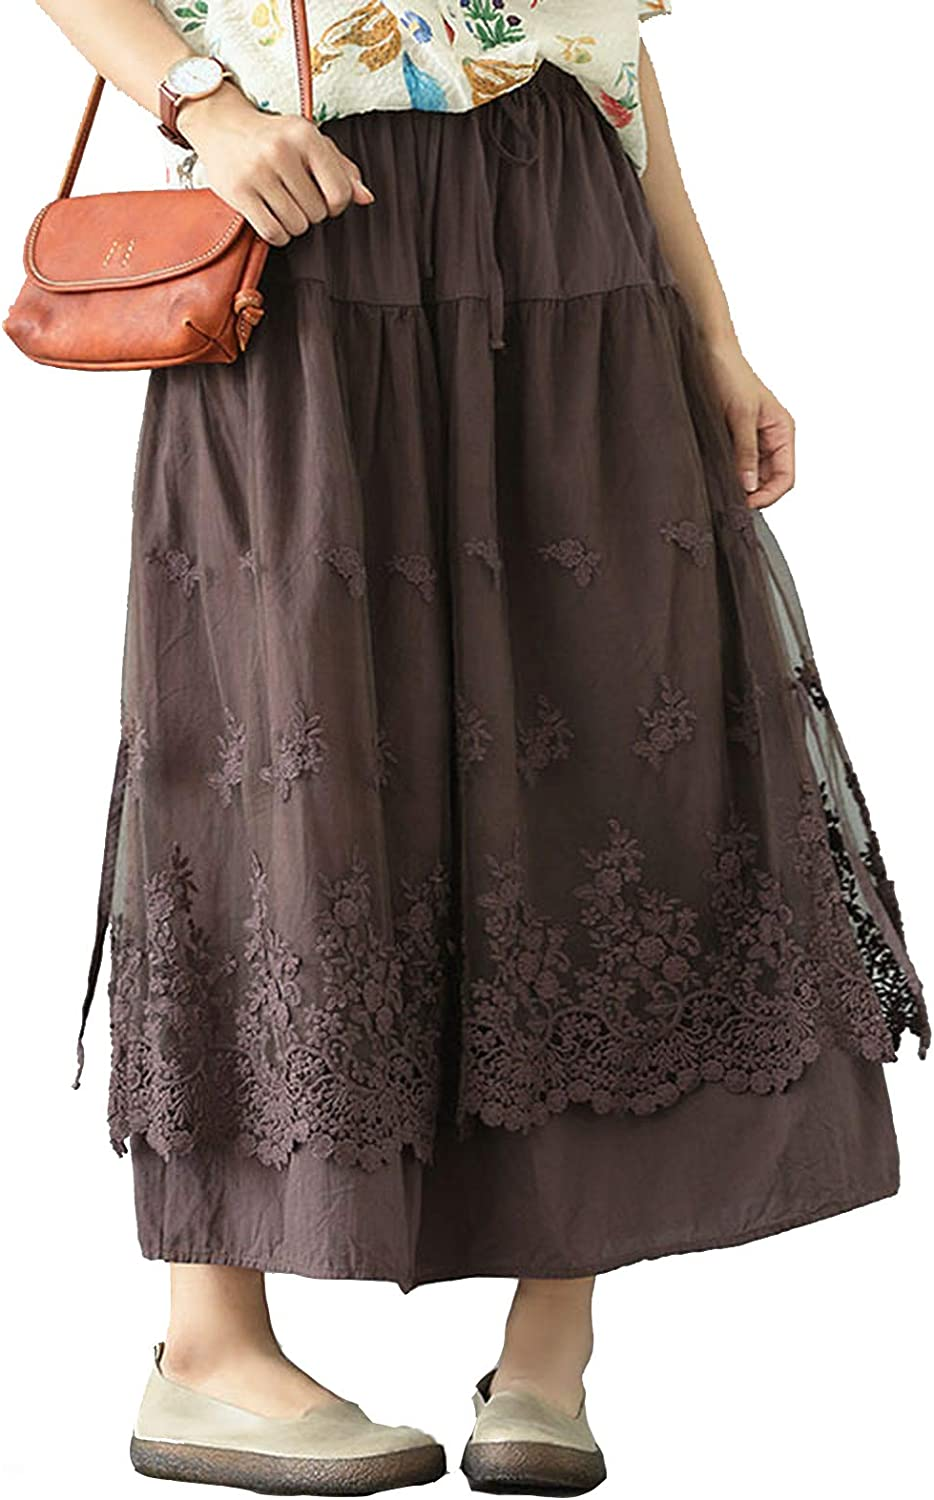 Bluecandy Eugen Yarn Skirt French Long Skirt Ankle Retro Double Mesh Yarn Loose Embroidery A-Line Skirt